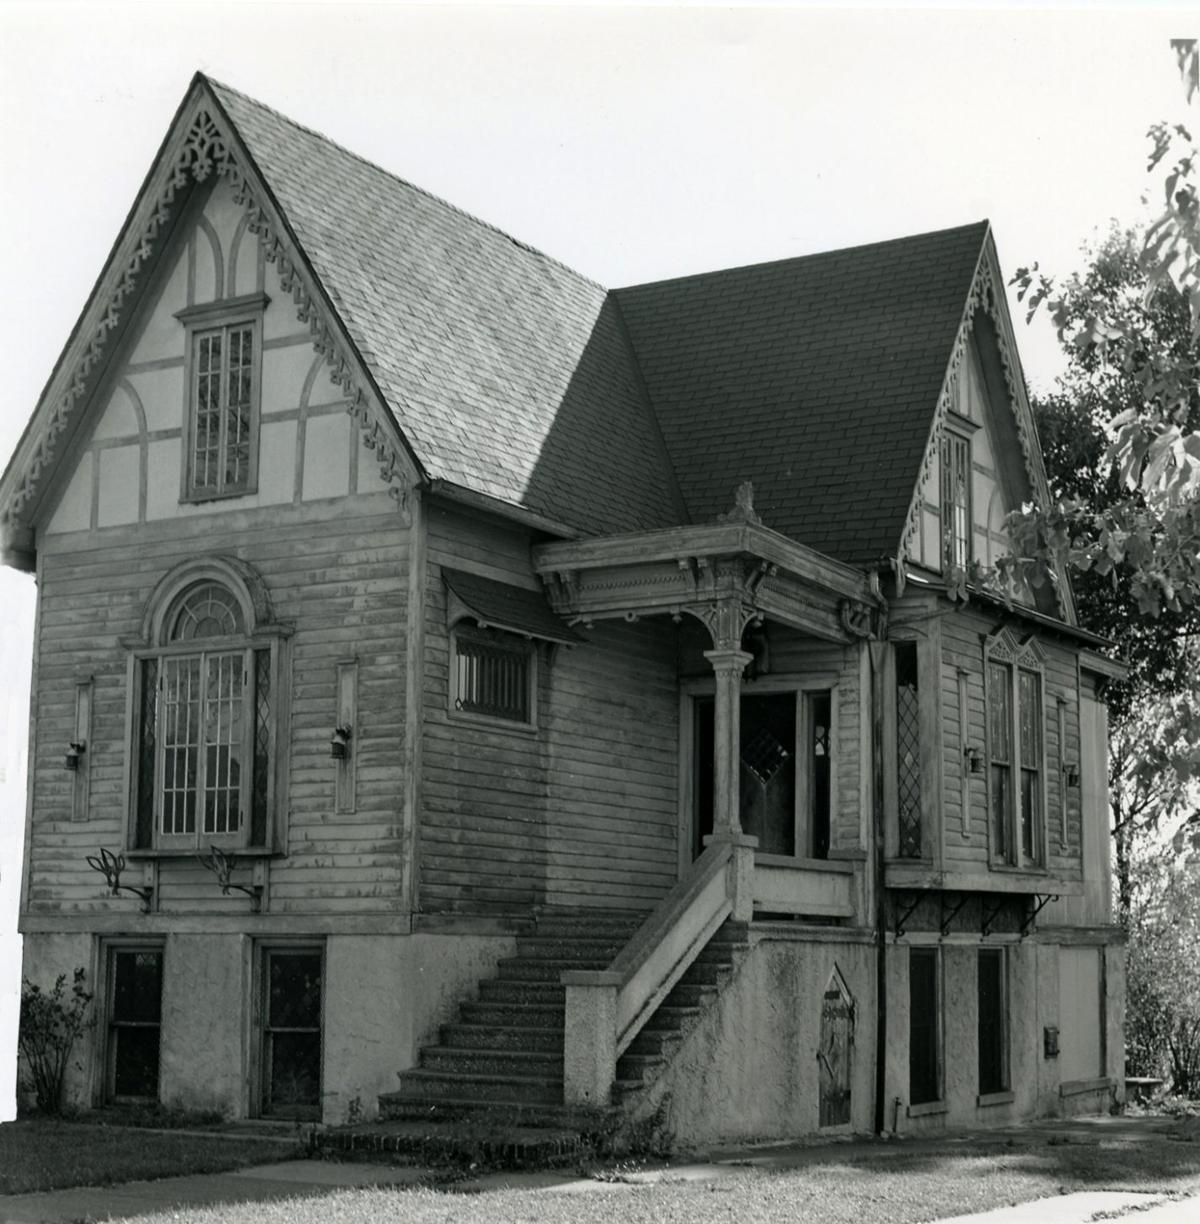 Jack Klasey: The haunted house that wasn't really haunted | Local